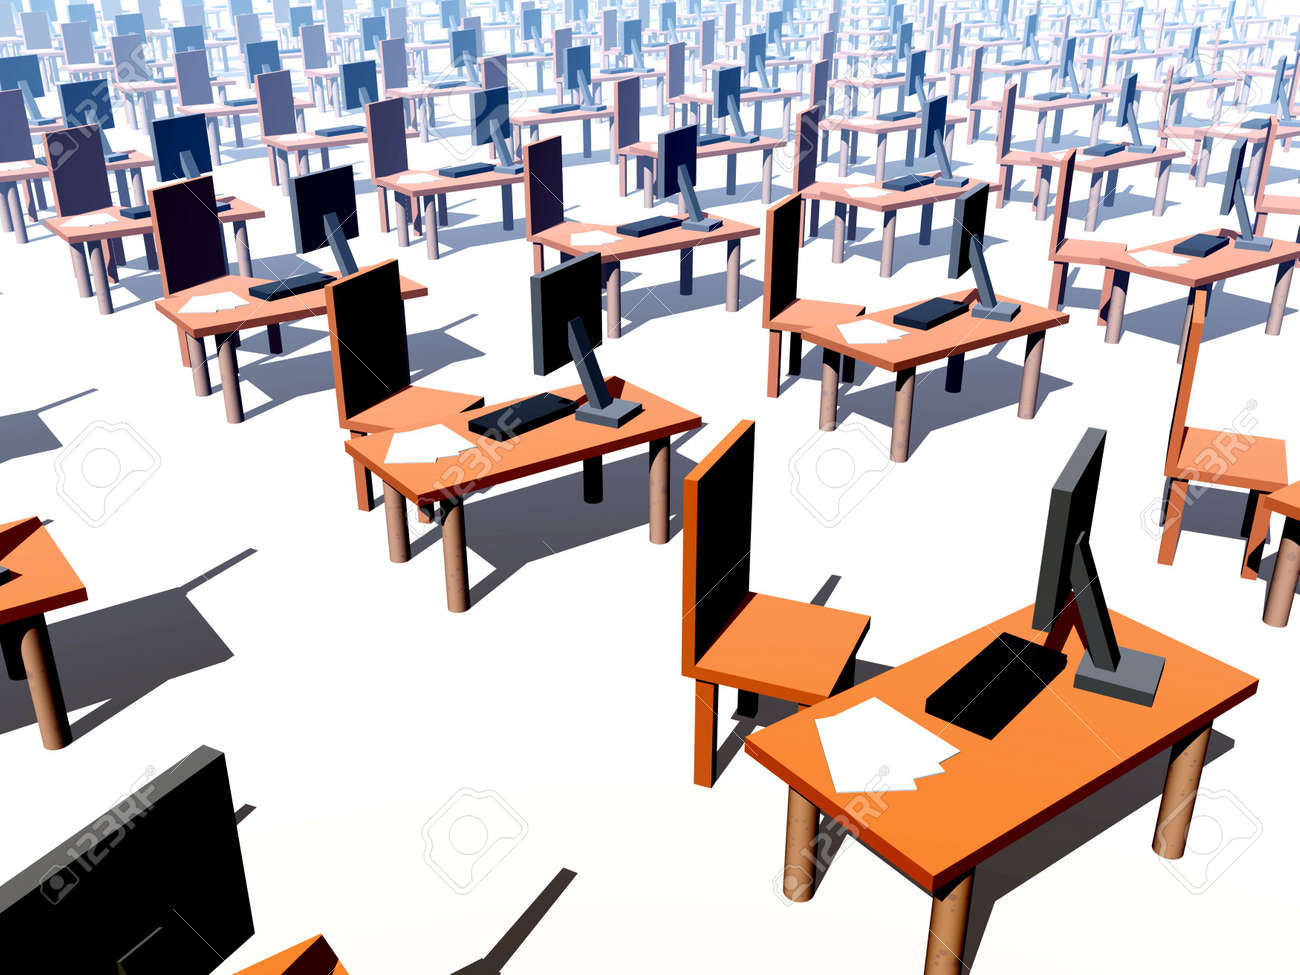 A conceptual image of a It office/work environment, it contains desks, chairs and computers with keyboards and paper Stock Photo - 2127598